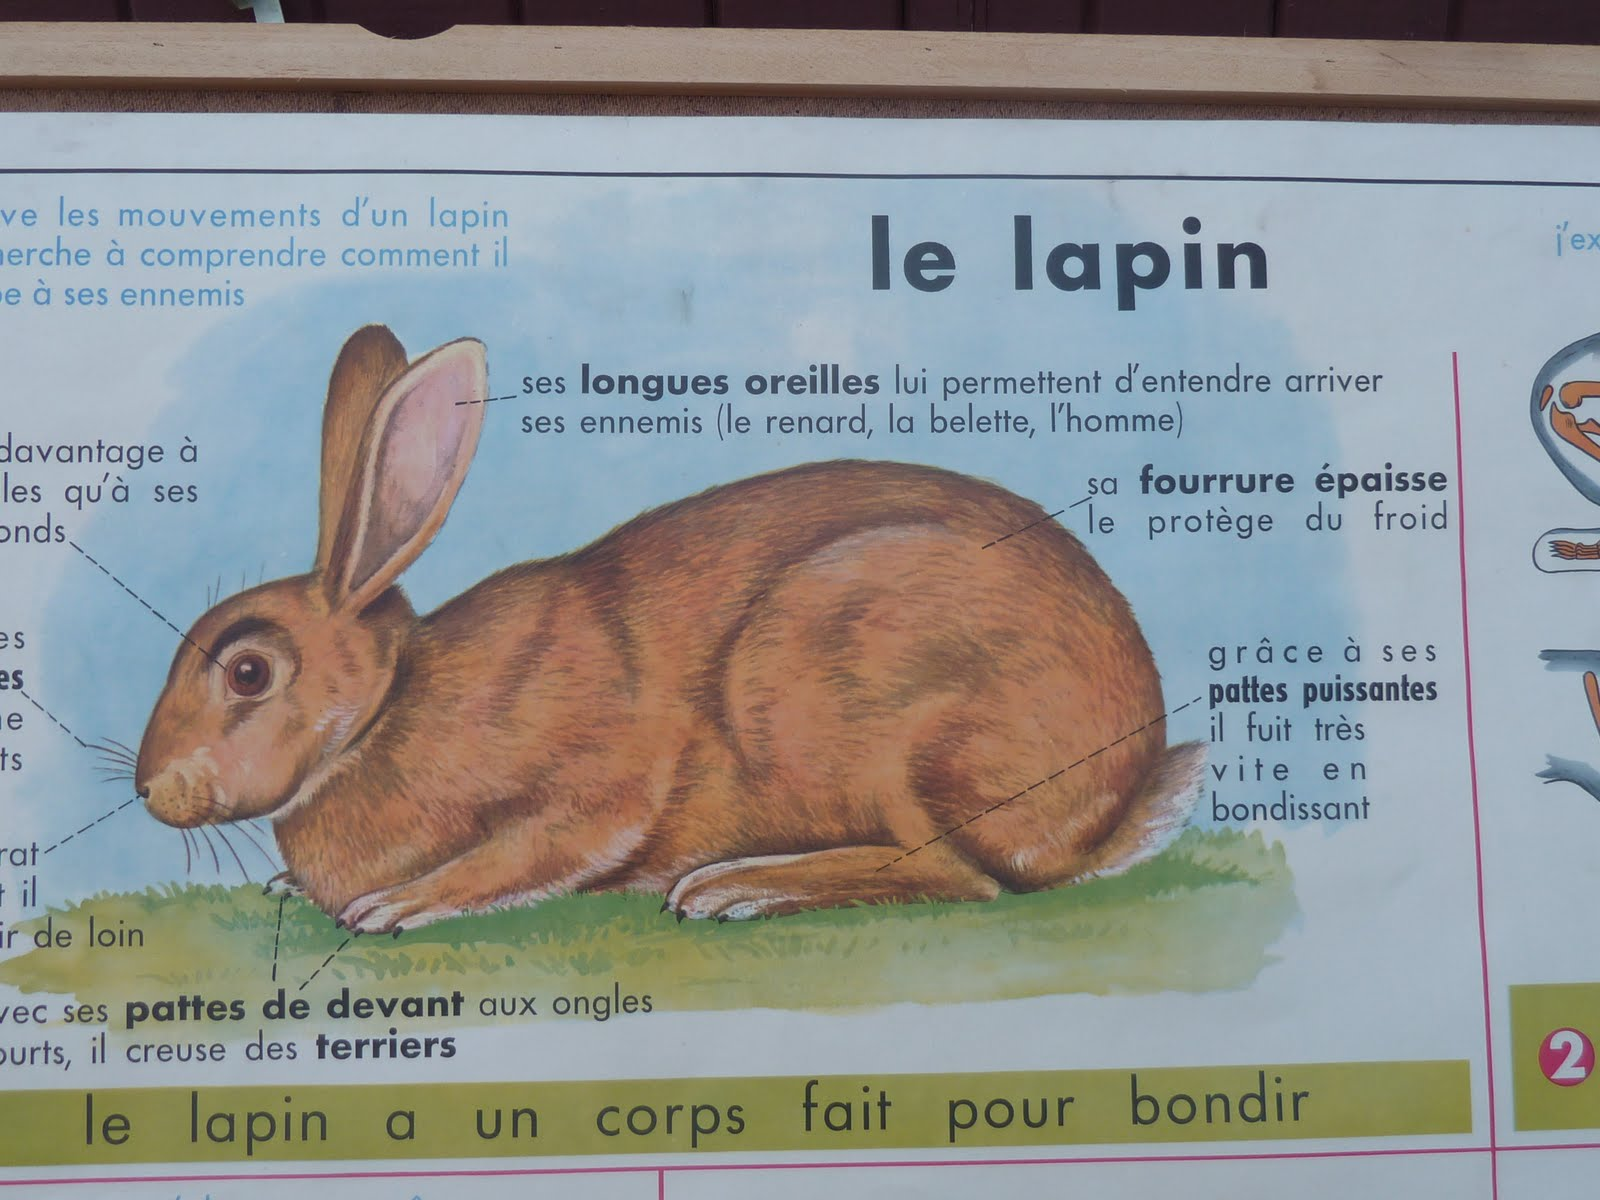 Vintage French Posters Botany Animals Anatomy Old World Maps From